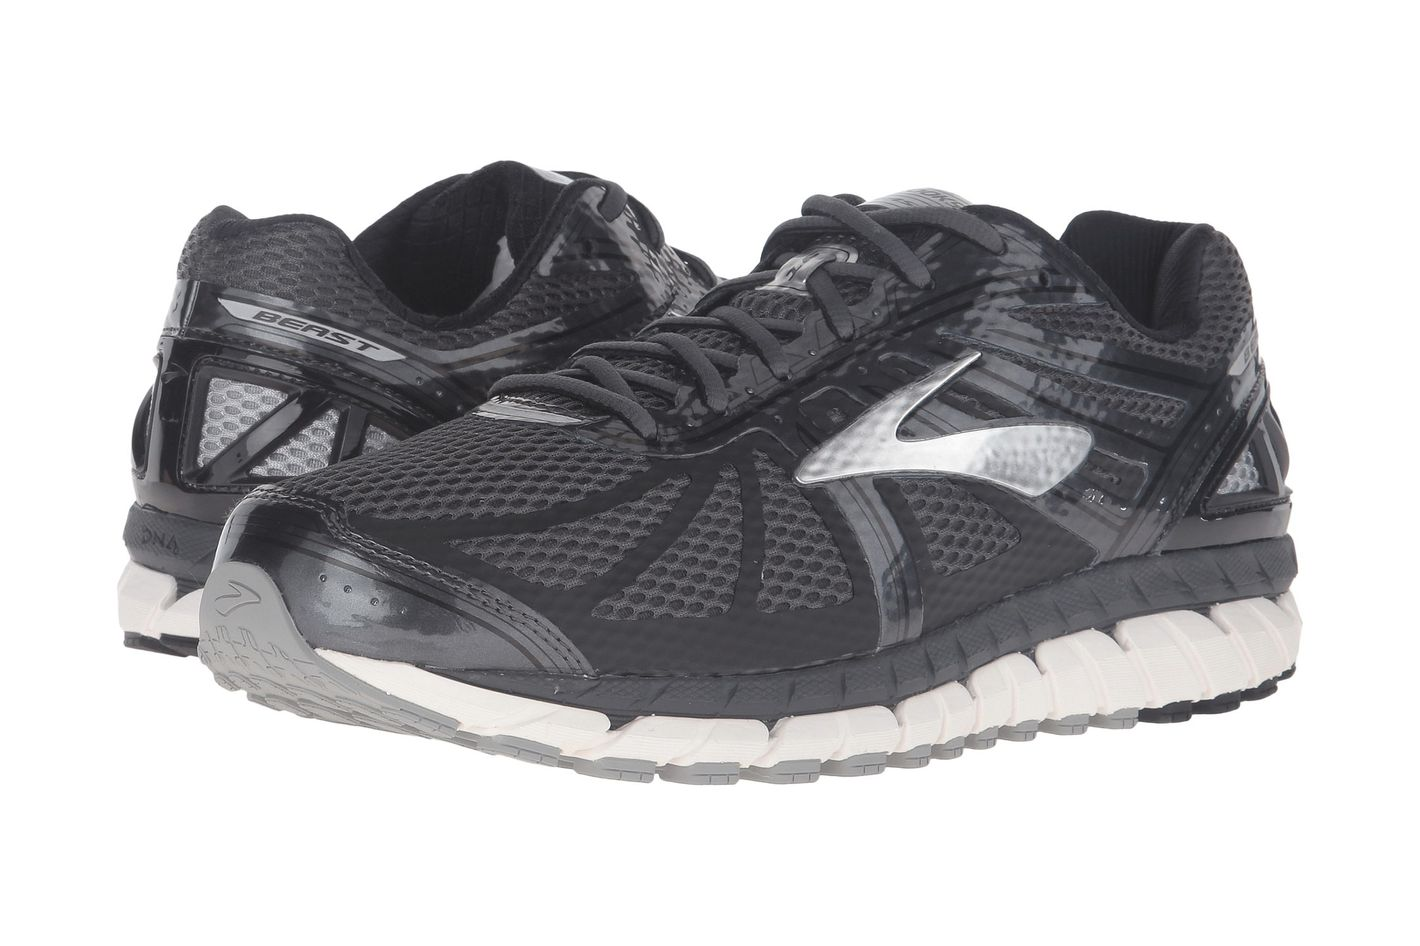 feb5968f9be064 ... climbing and strength training at gym.  180 at Finish Line. Buy. Brooks  Beast  16 Running Shoes